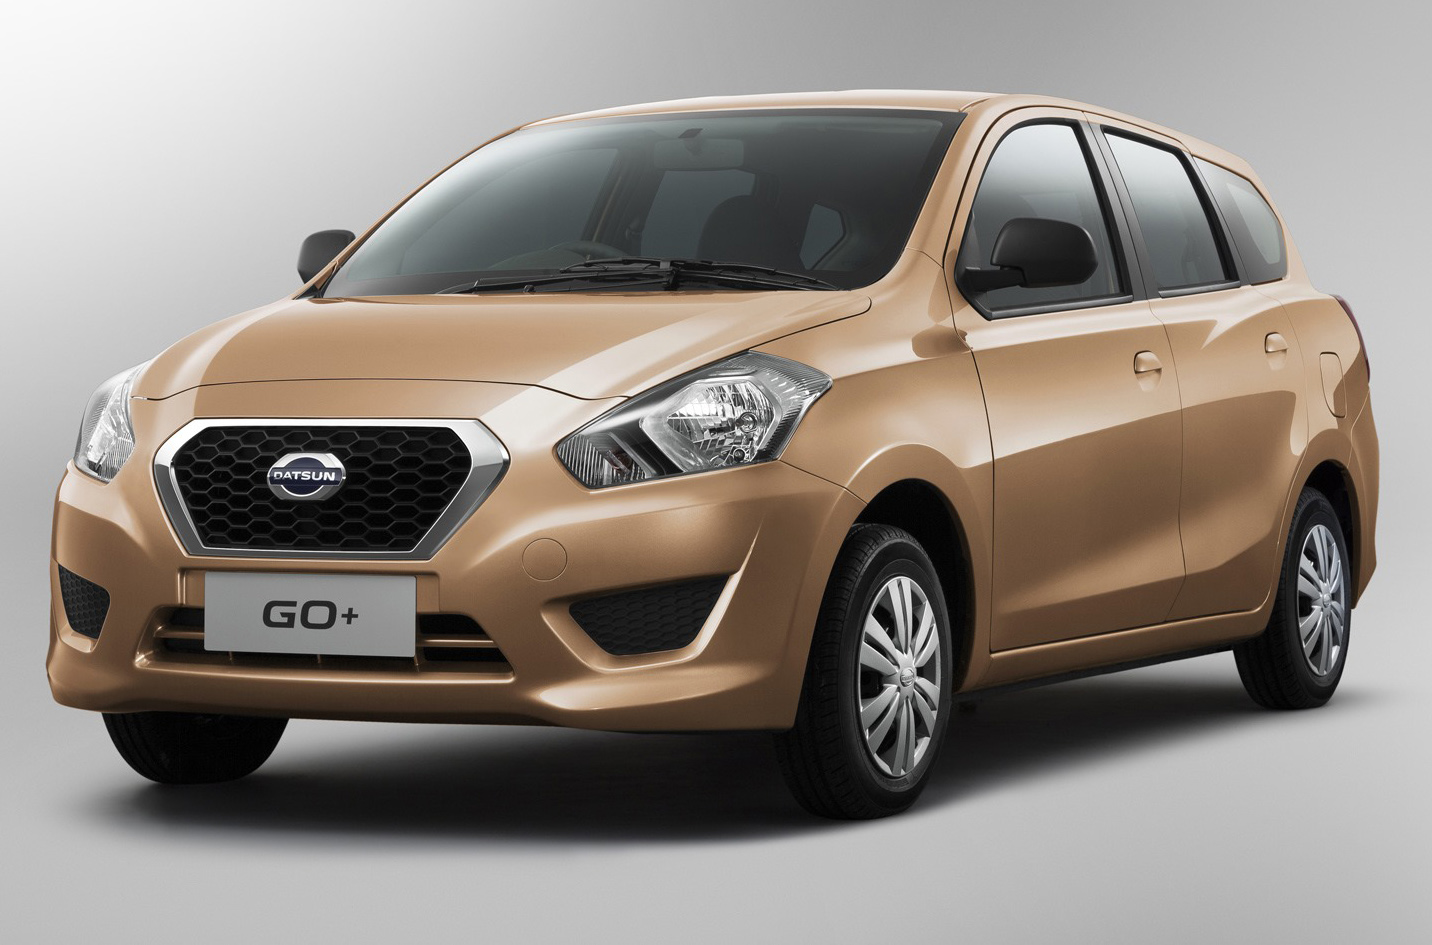 Datsun Go Plus Interior, Exterior & Design Photos [2015 Model]